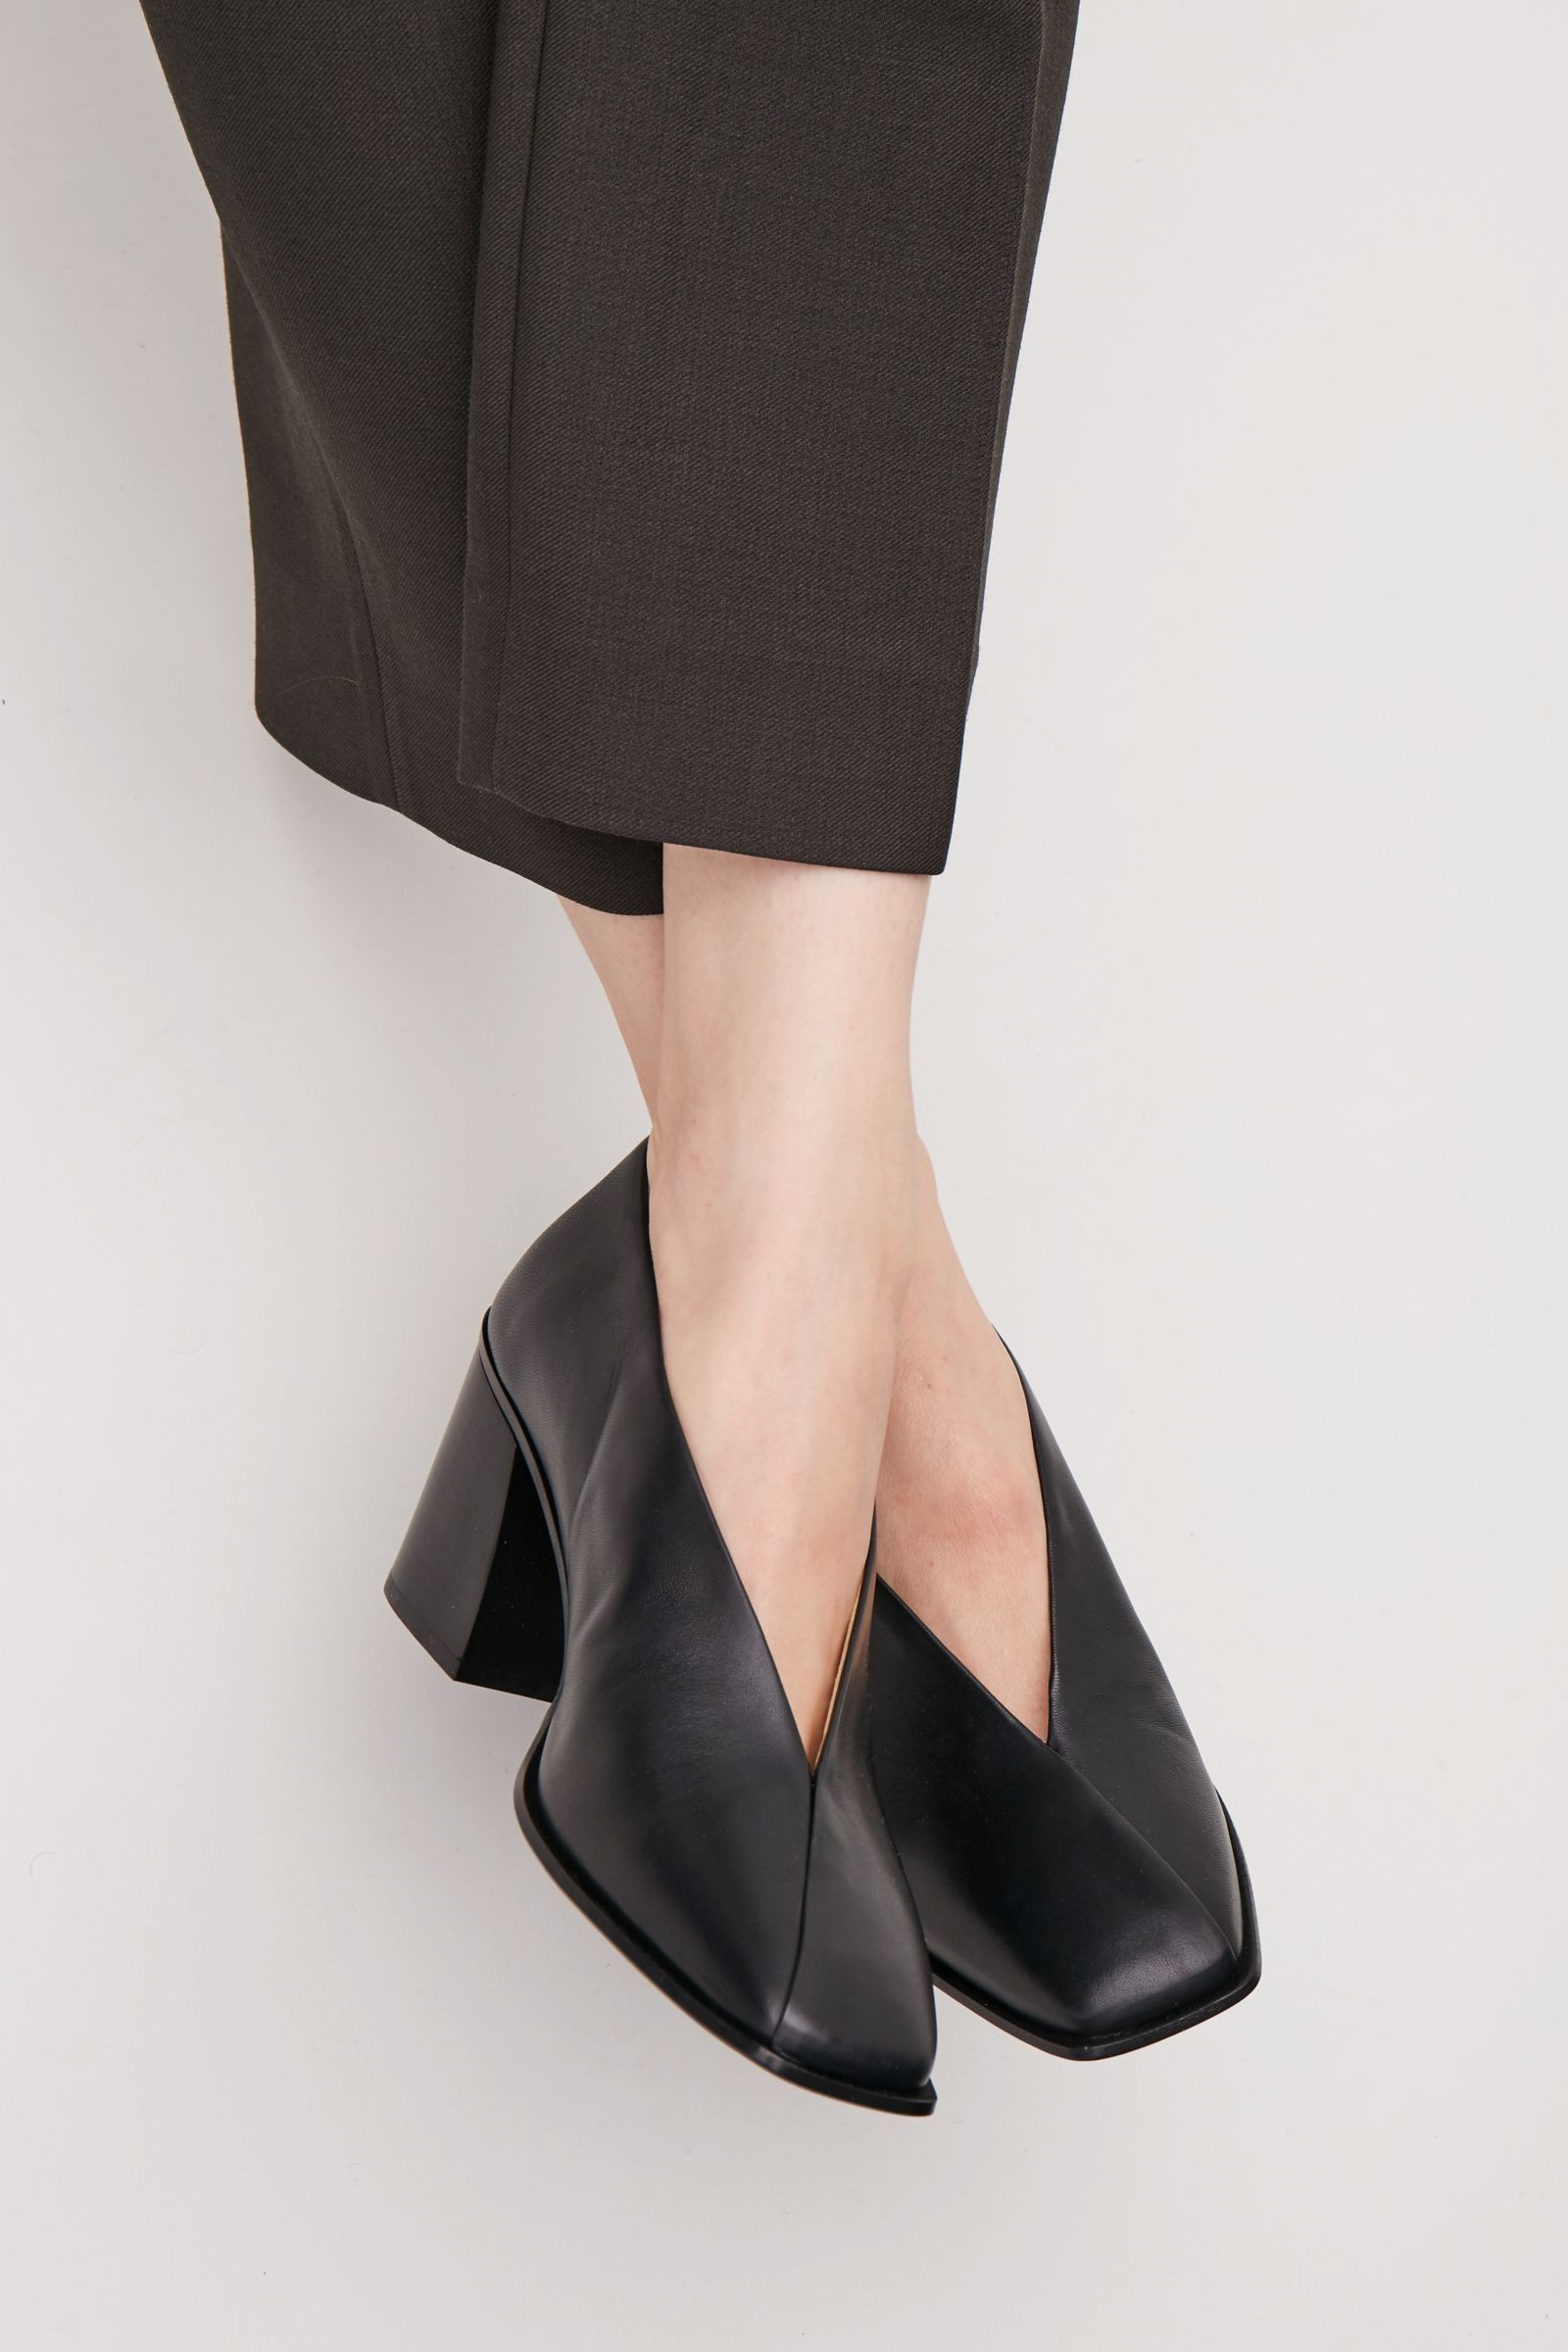 1918d39527e  190 COS image 5 of Square-toe pumps with fold detail in Black ...